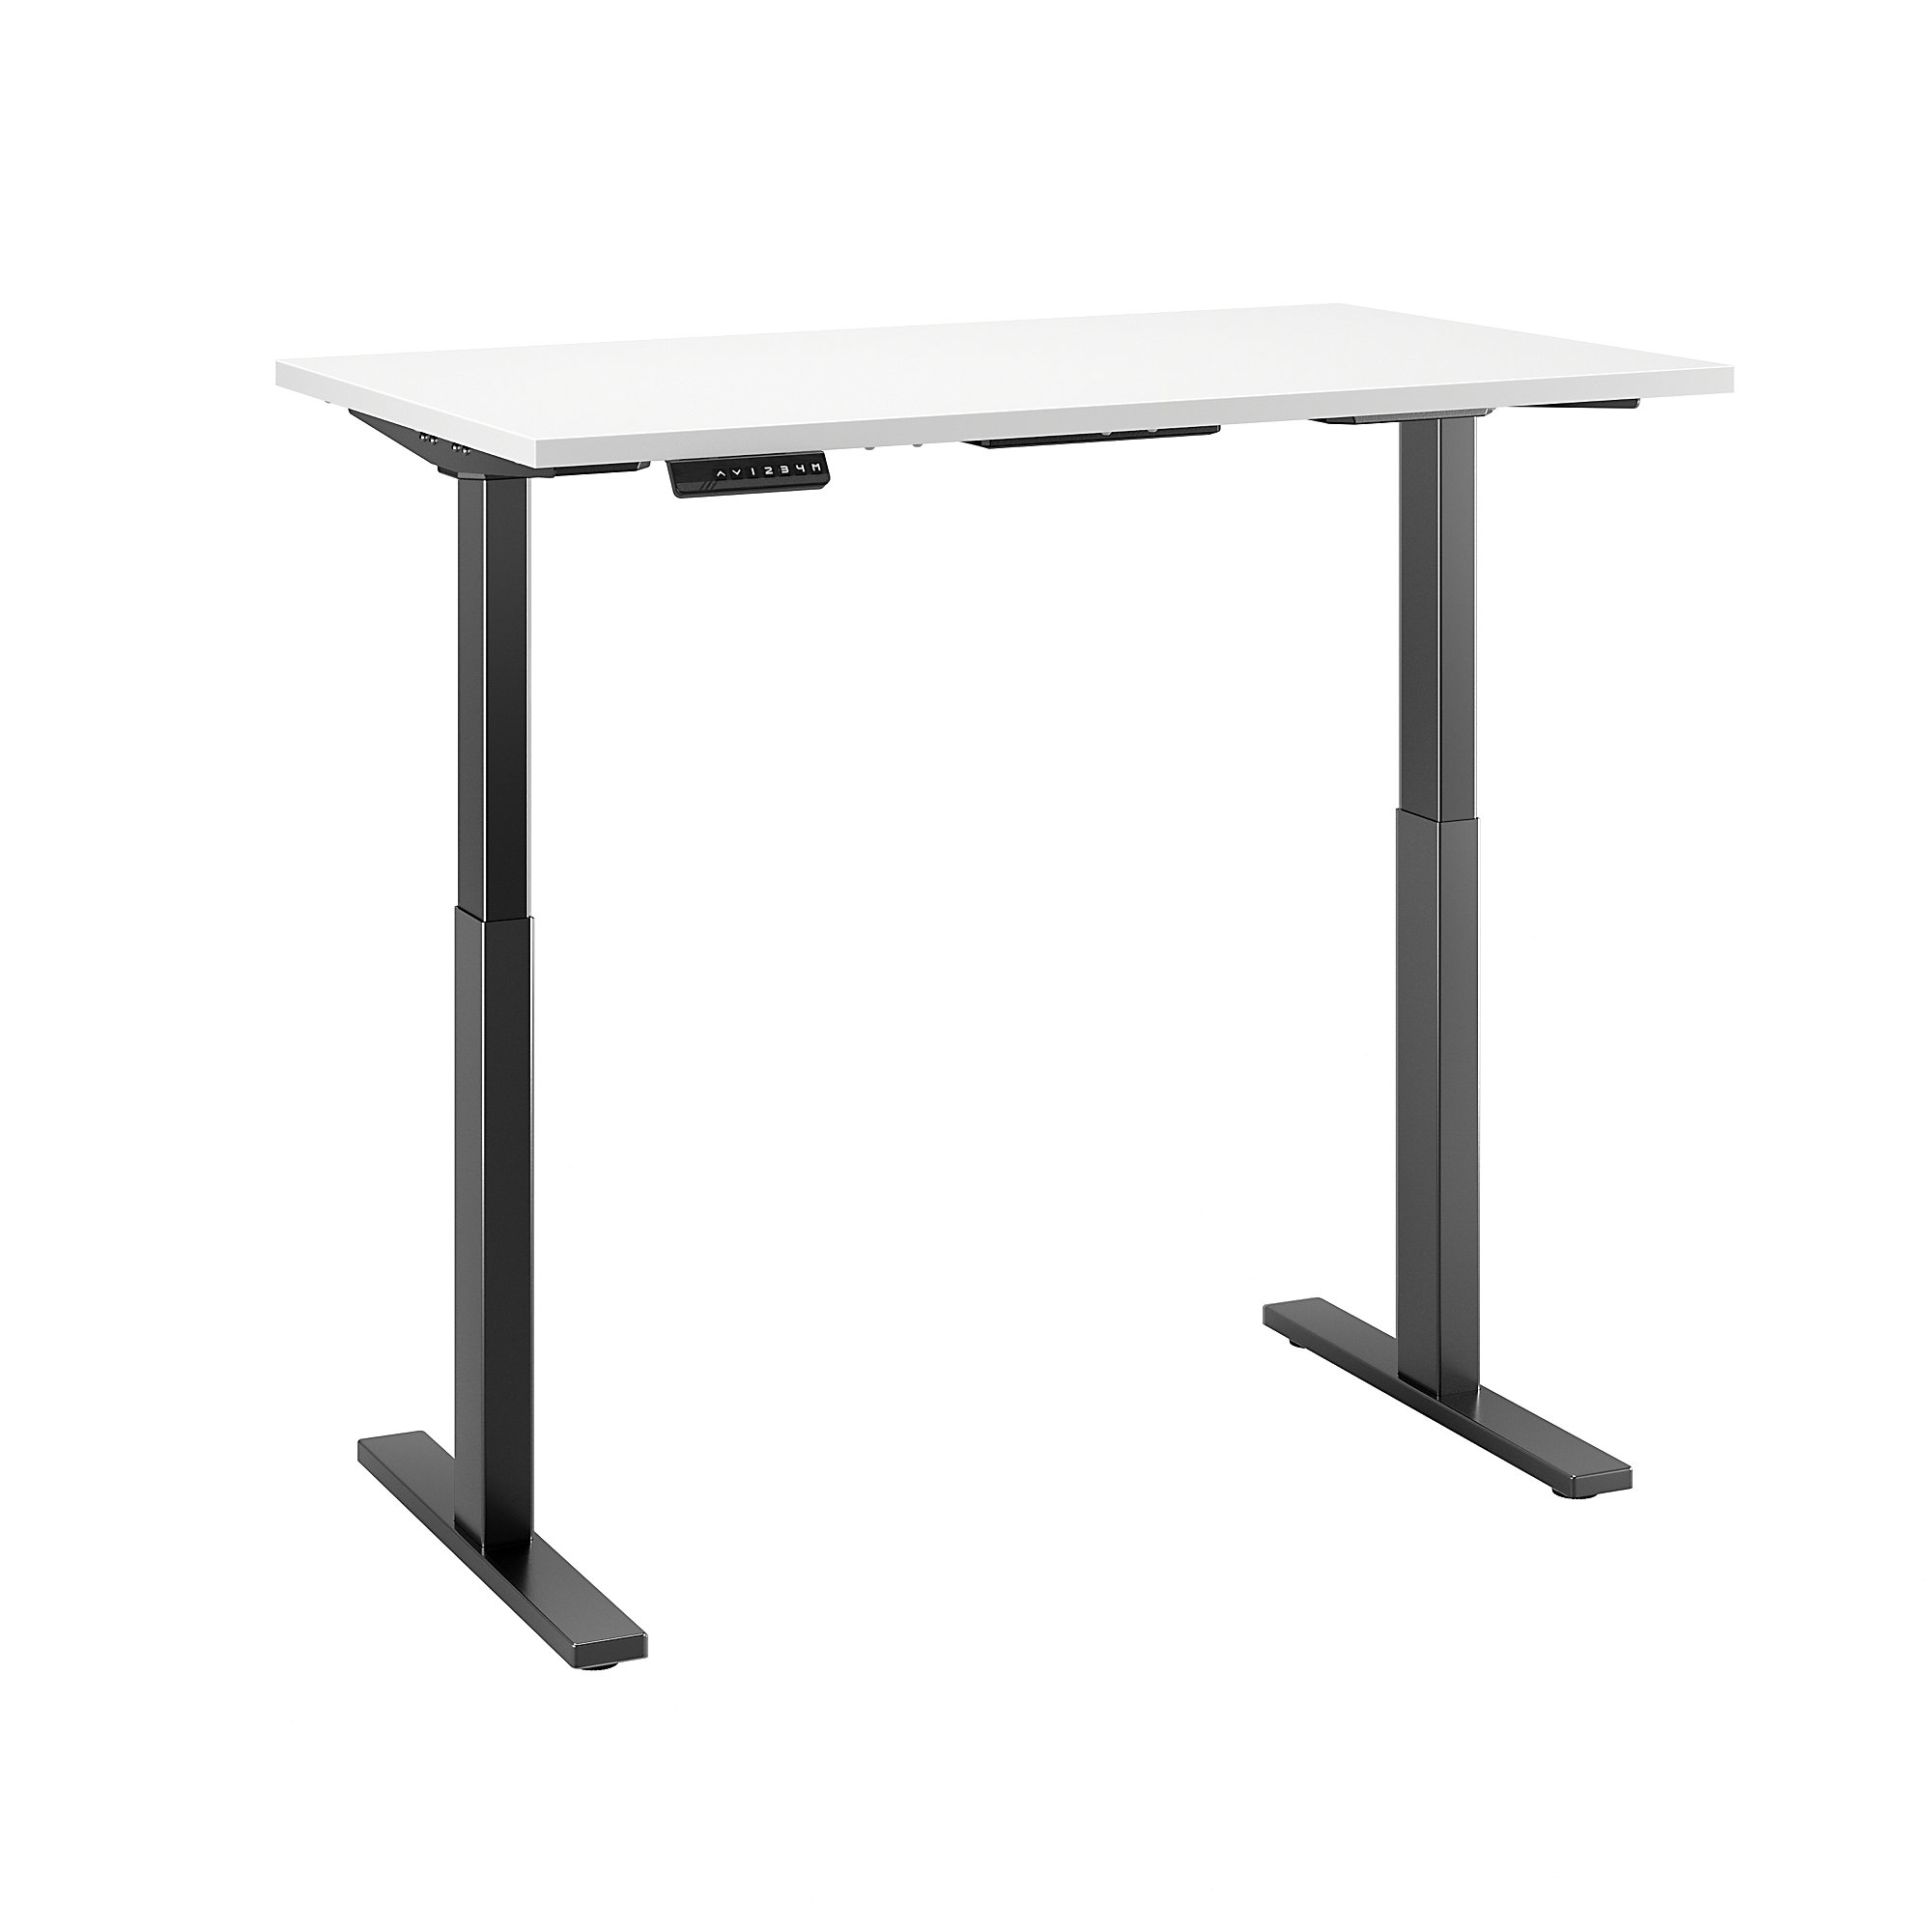 Sit stand desk adjustable CUB M6S4830WHBK FBB